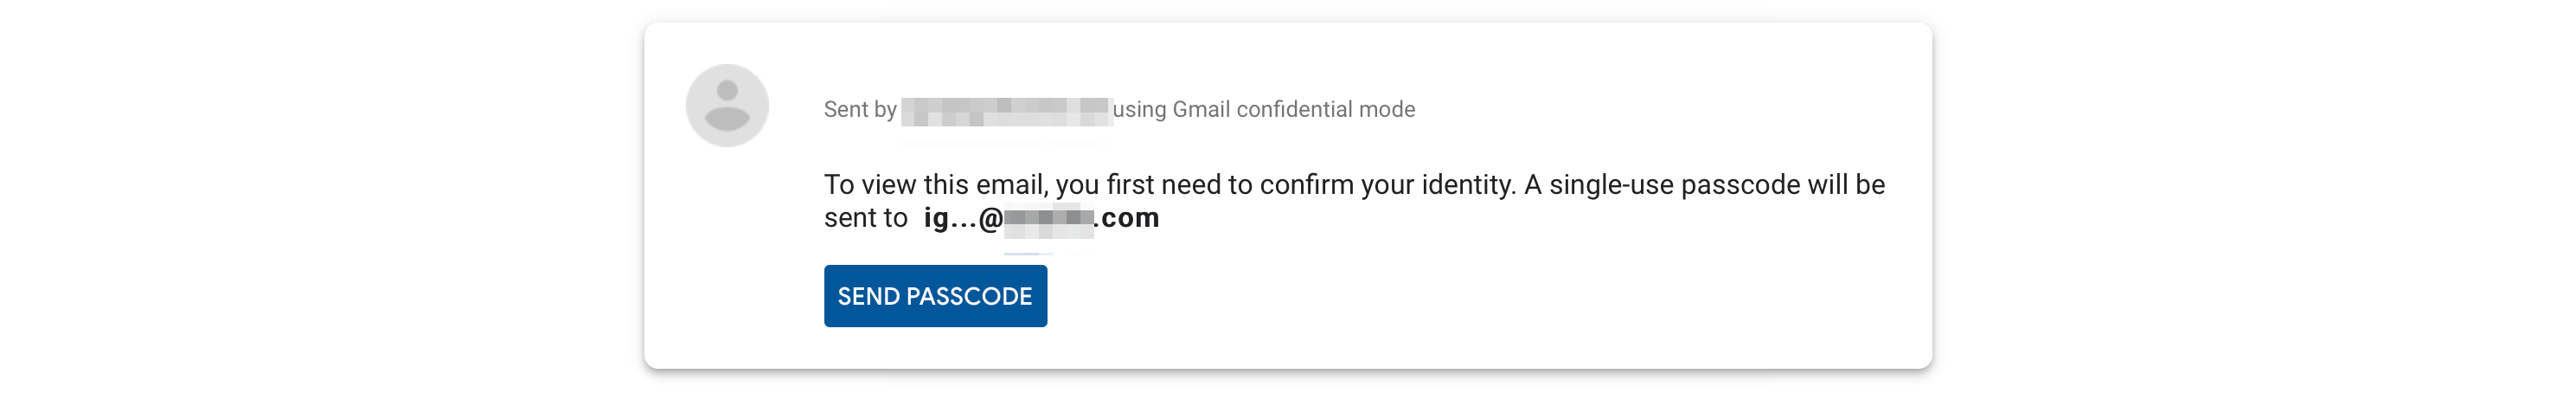 gmailconf_5.png